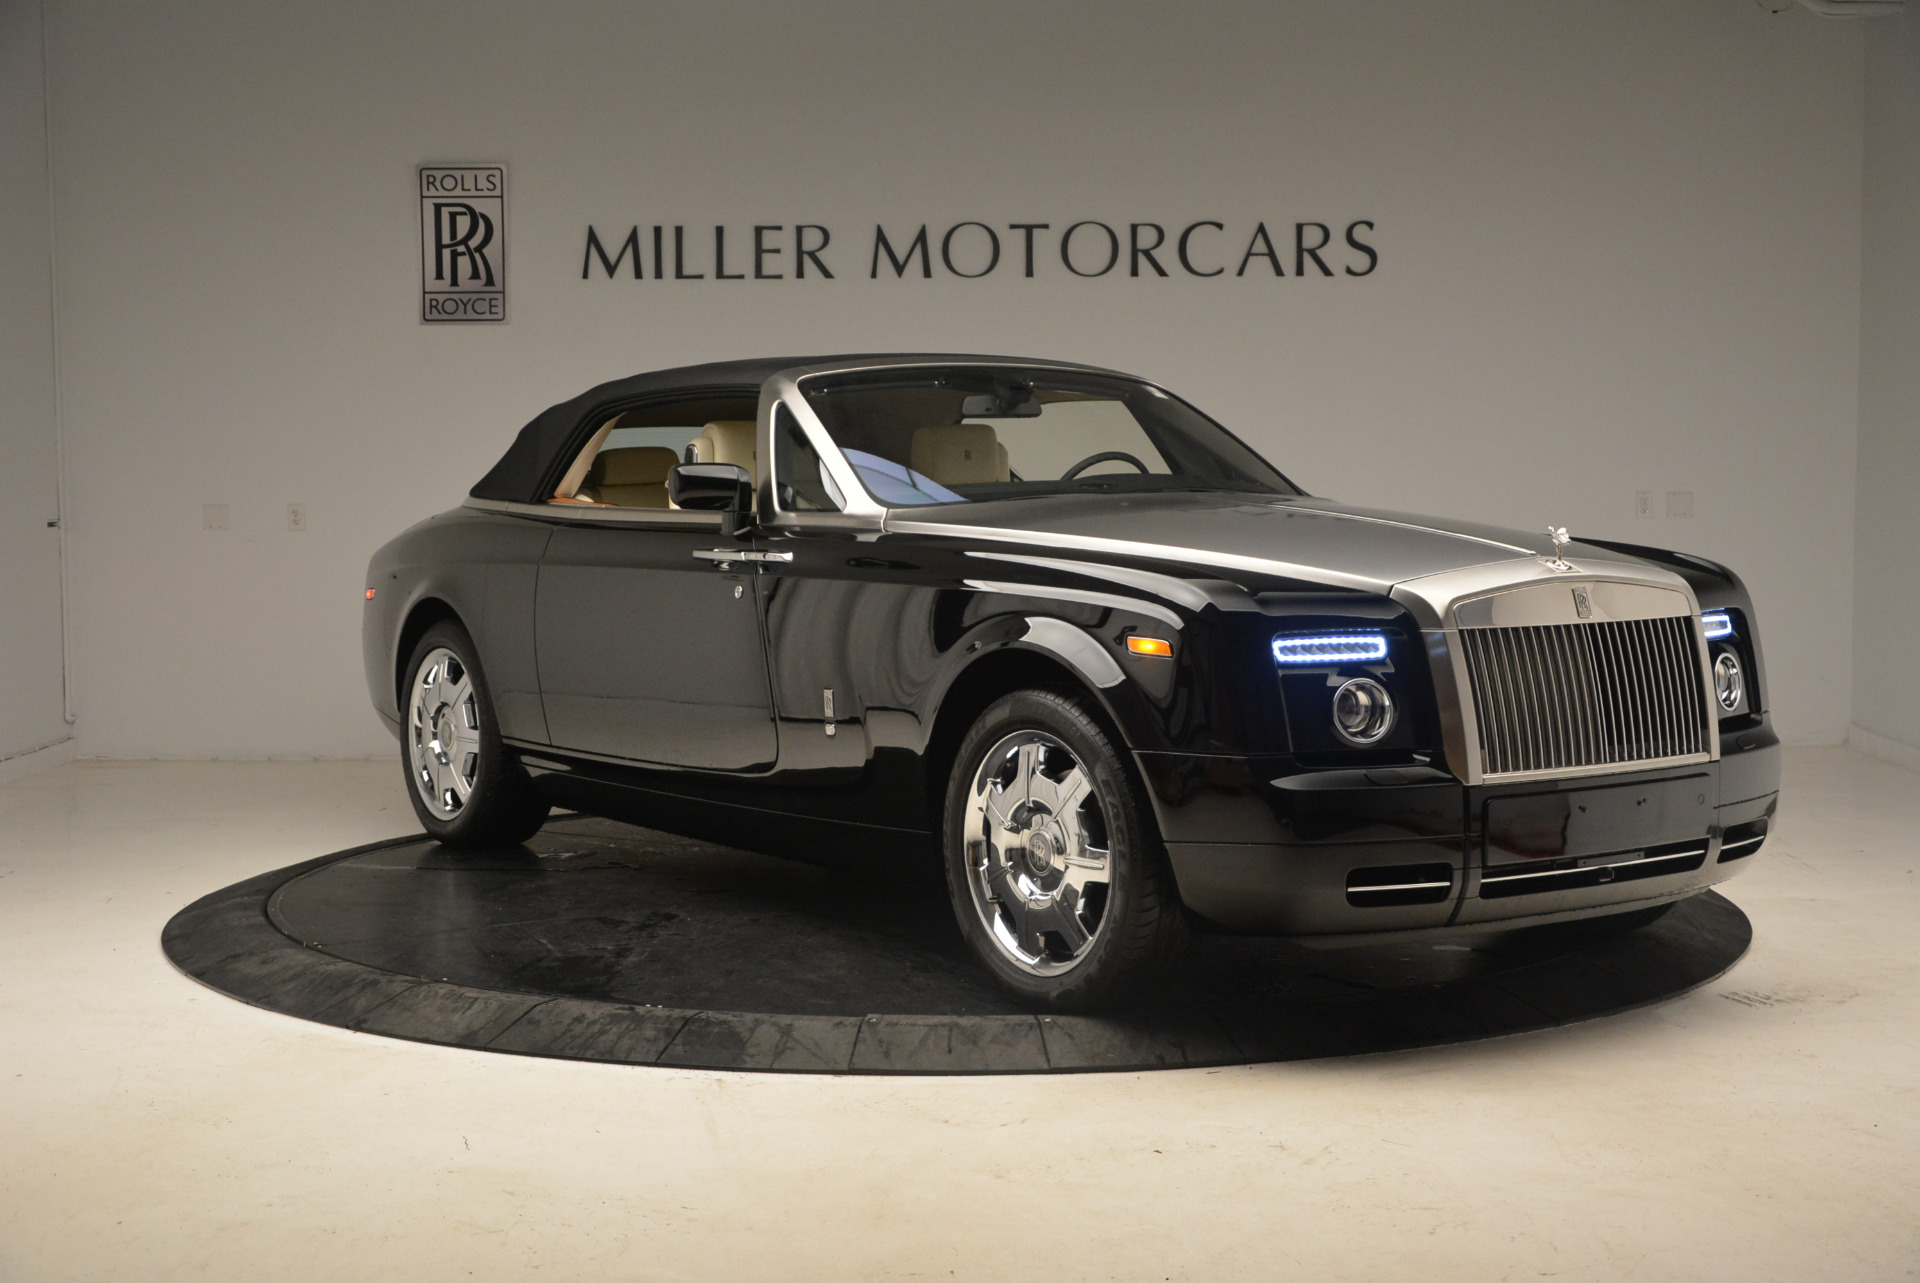 Used 2009 Rolls-Royce Phantom Drophead Coupe  For Sale In Westport, CT 1792_p23